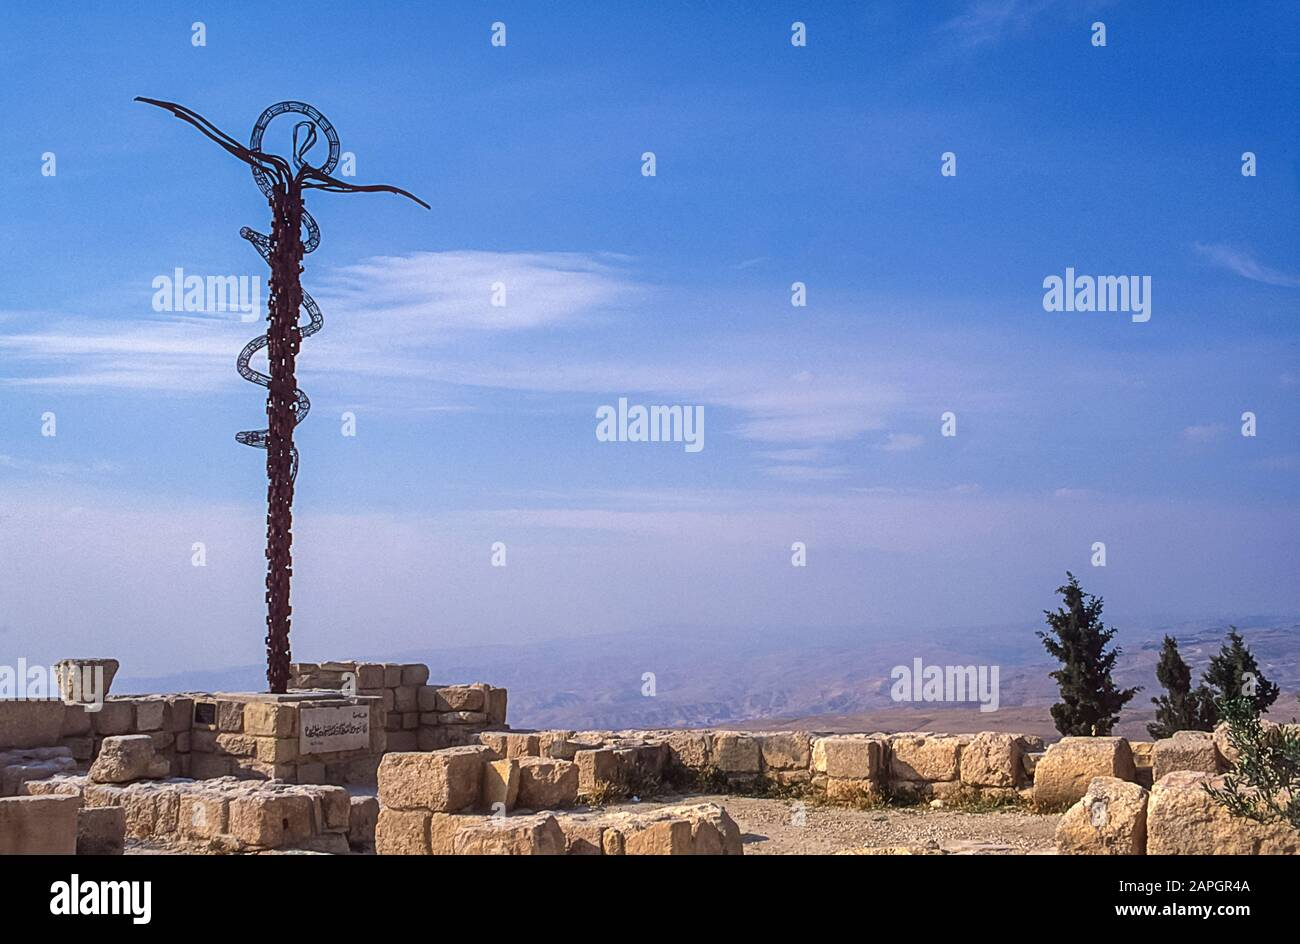 Jordan. Replica memorial of Moses Staff to the Prophet Moses who led the tribe of the Children of Israel through the Negev deserts and mountains  for 40 years until he reached Mount Nebo at the present day north Jordan town of Madaba from where he declared having found the Promised Land of the River Jordan. Stock Photo